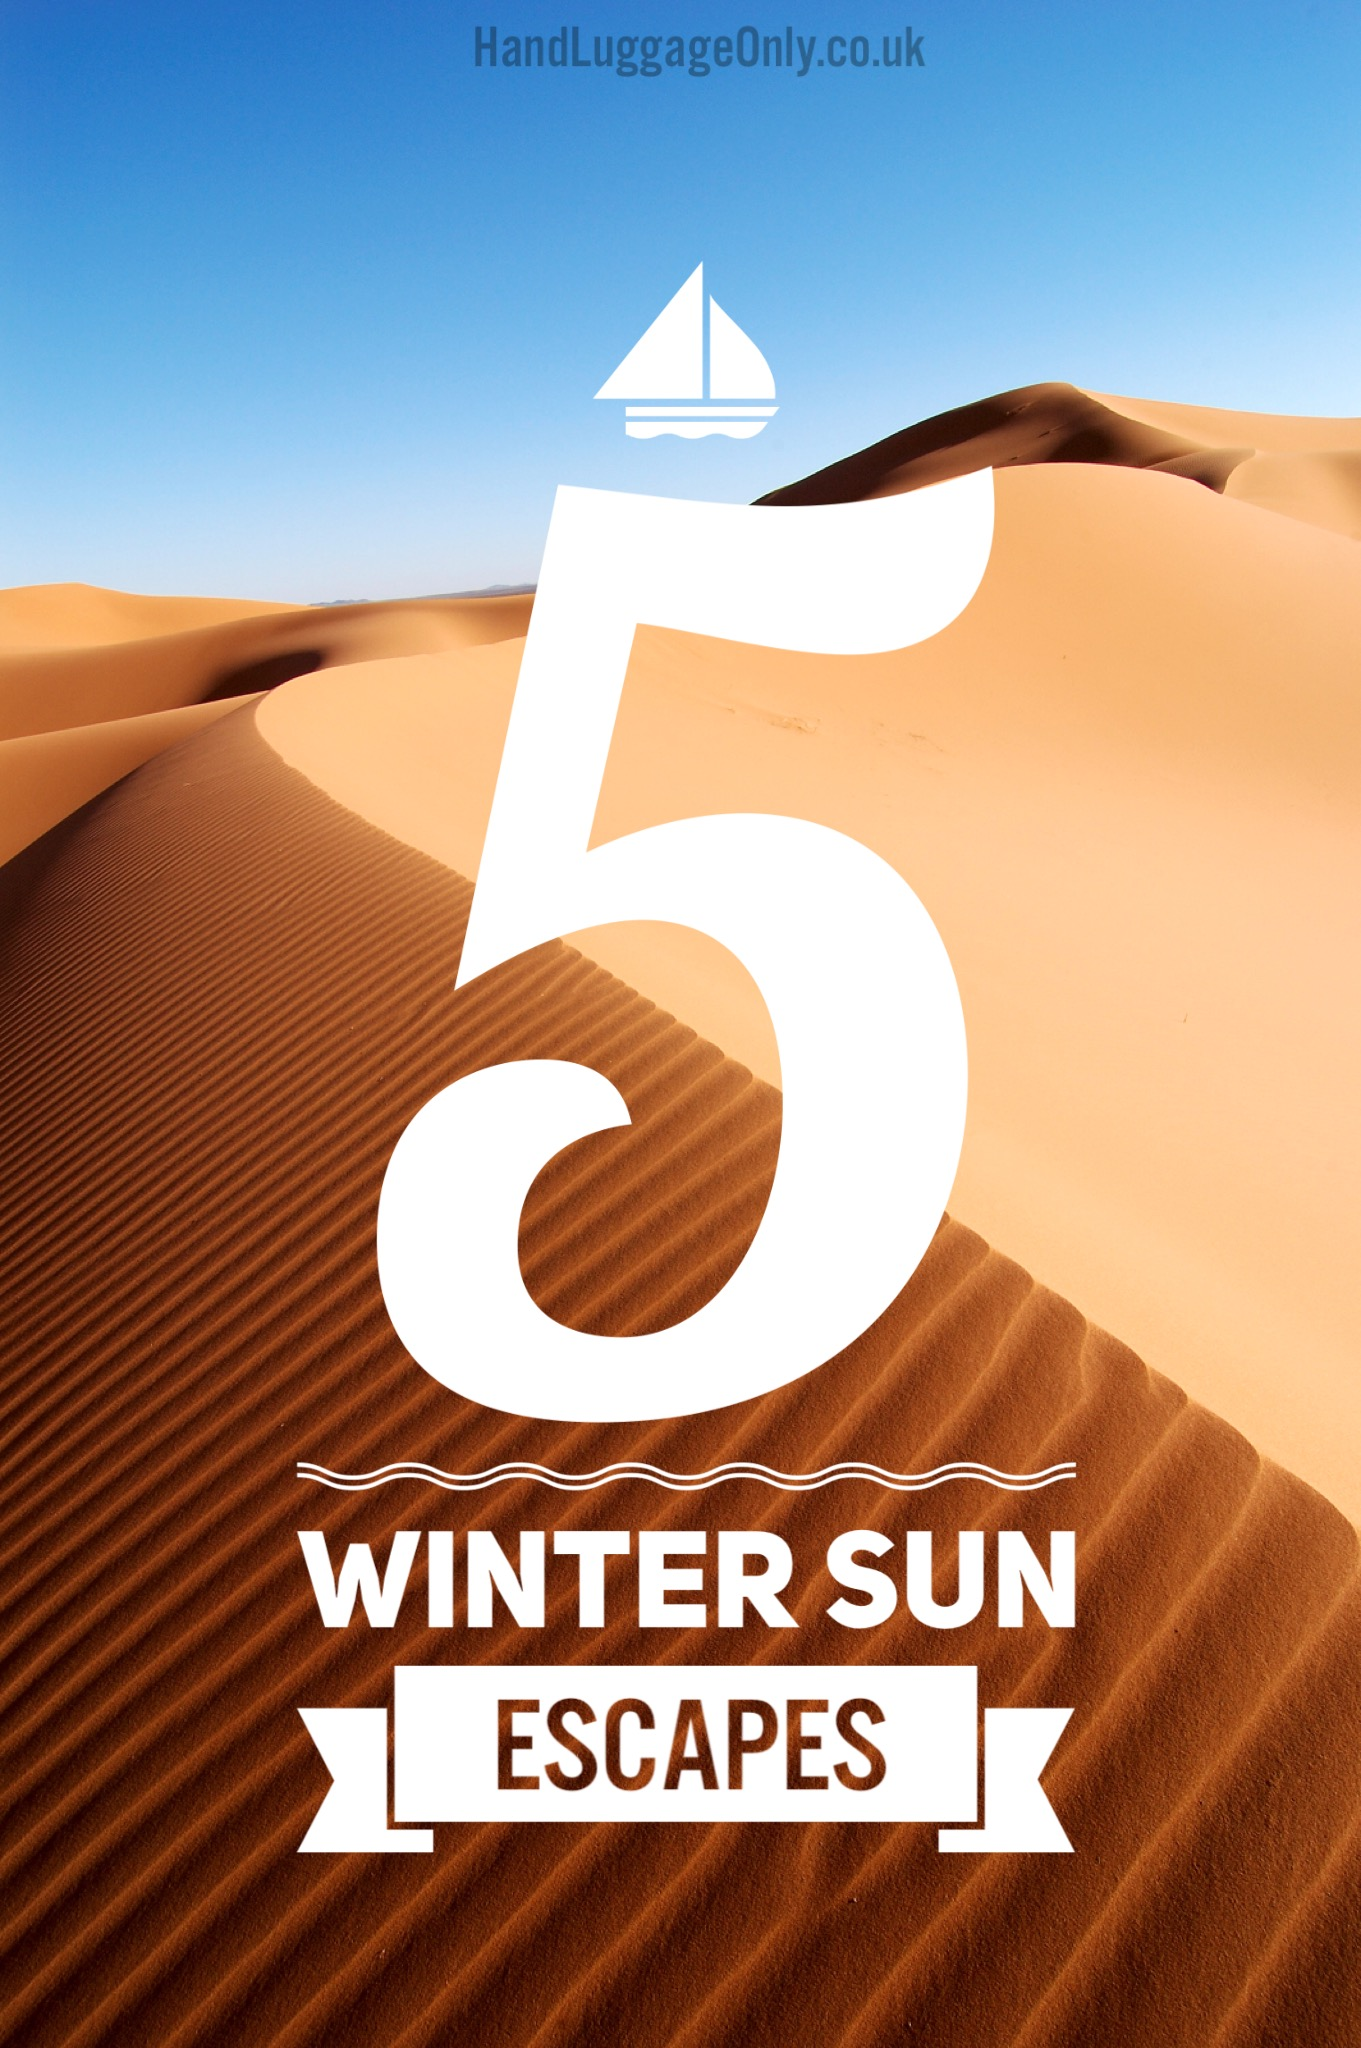 5 Winter Sun Escapes From Cold Europe